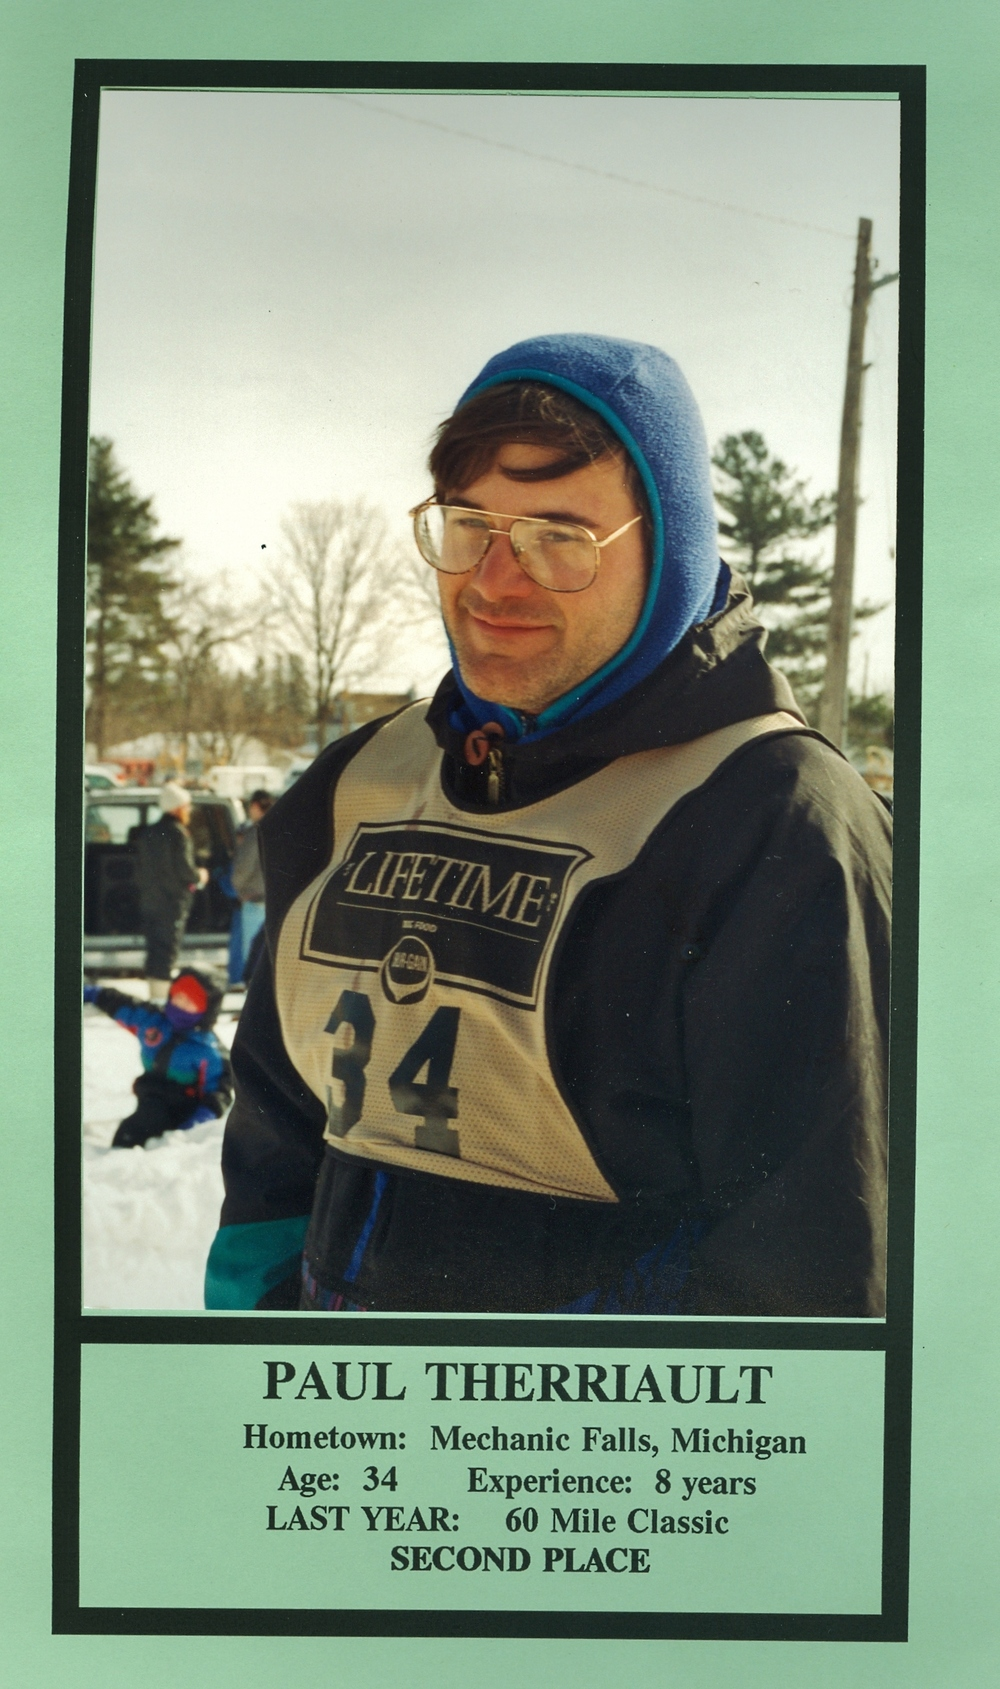 Snofest 1994 Paul Therriault, Mechanic Falls, Michigan, 2nd place 60 mile.jpg